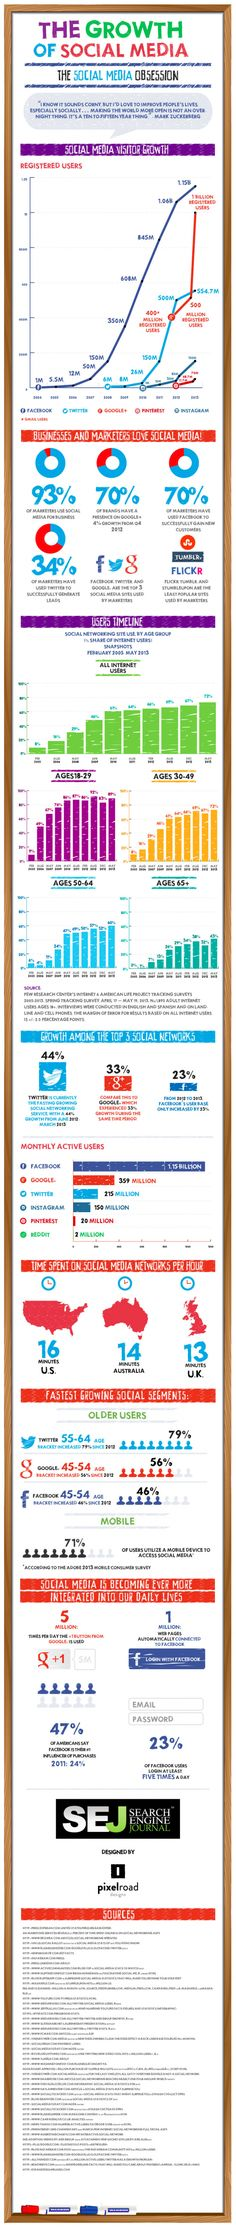 The Growth of Social Media v2.0 [INFOGRAPHIC] - Search Engine Journal